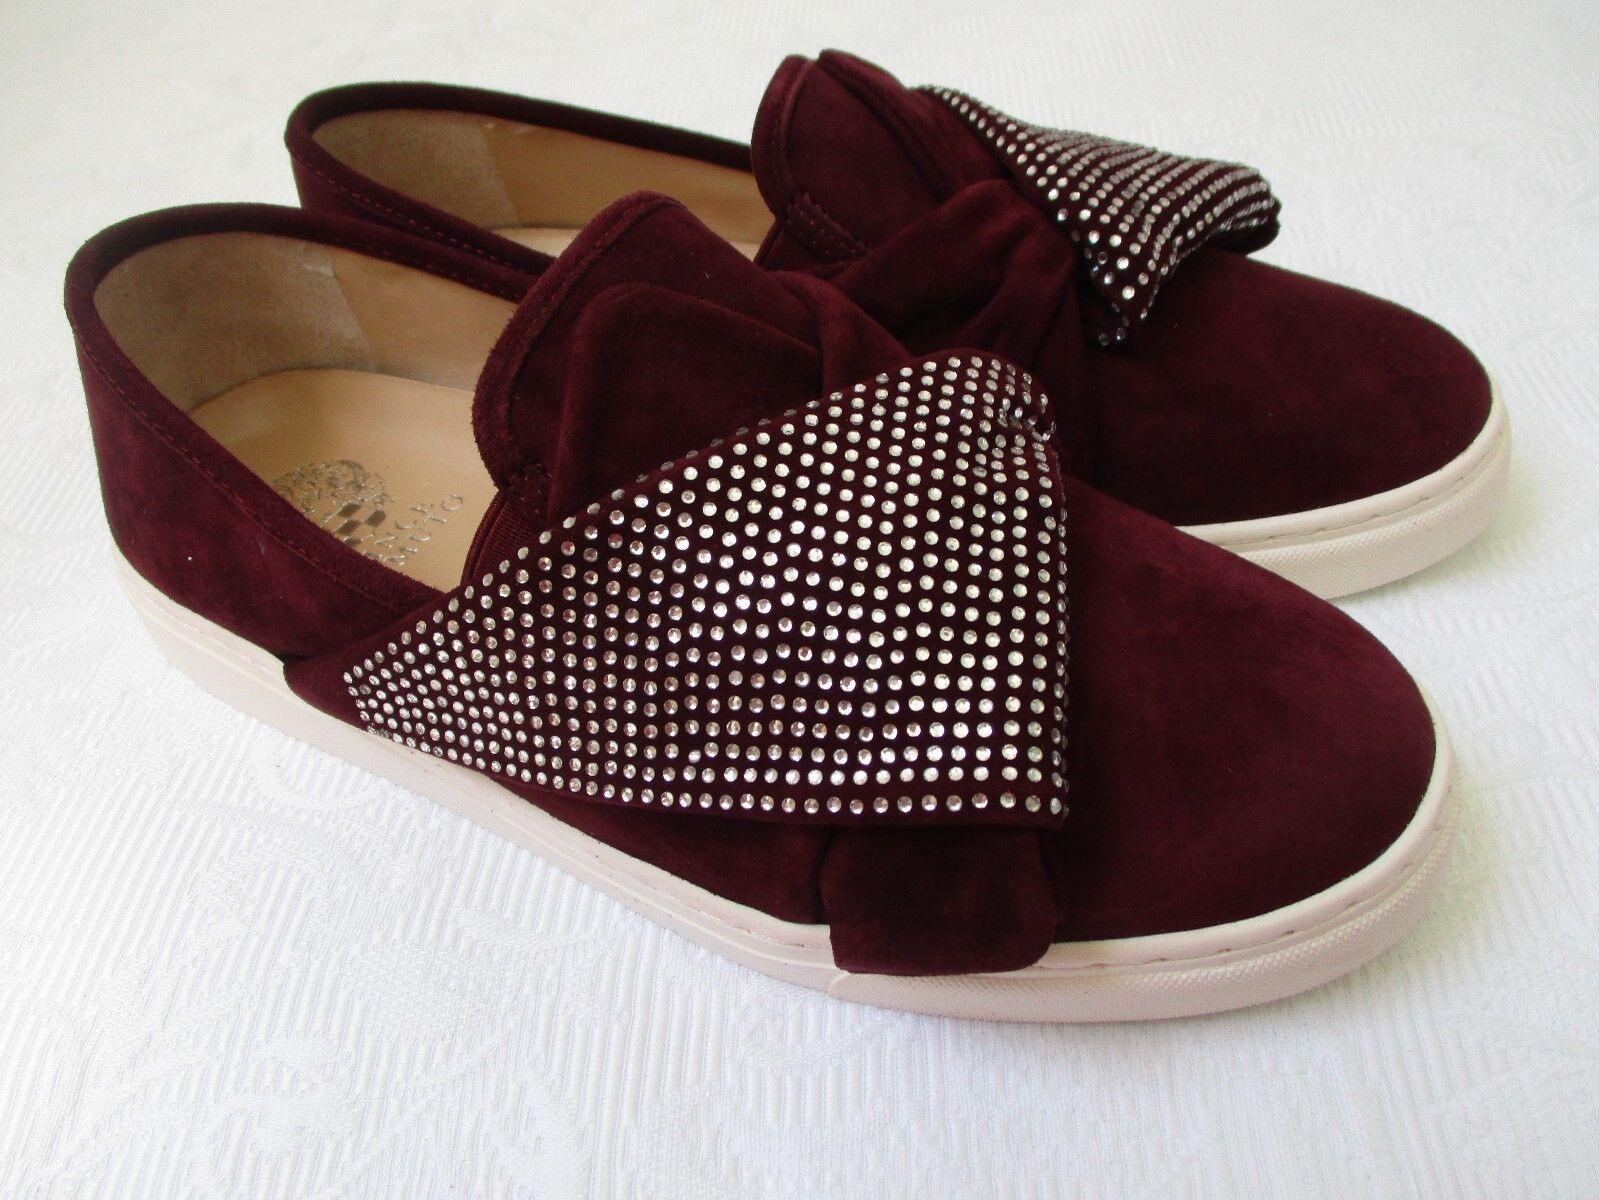 VINCE CAMUTO BARITA BURGUNDY SUEDE RHINESTONE SNEAKERS NEW SIZE 9 W - NEW SNEAKERS 9bd47e